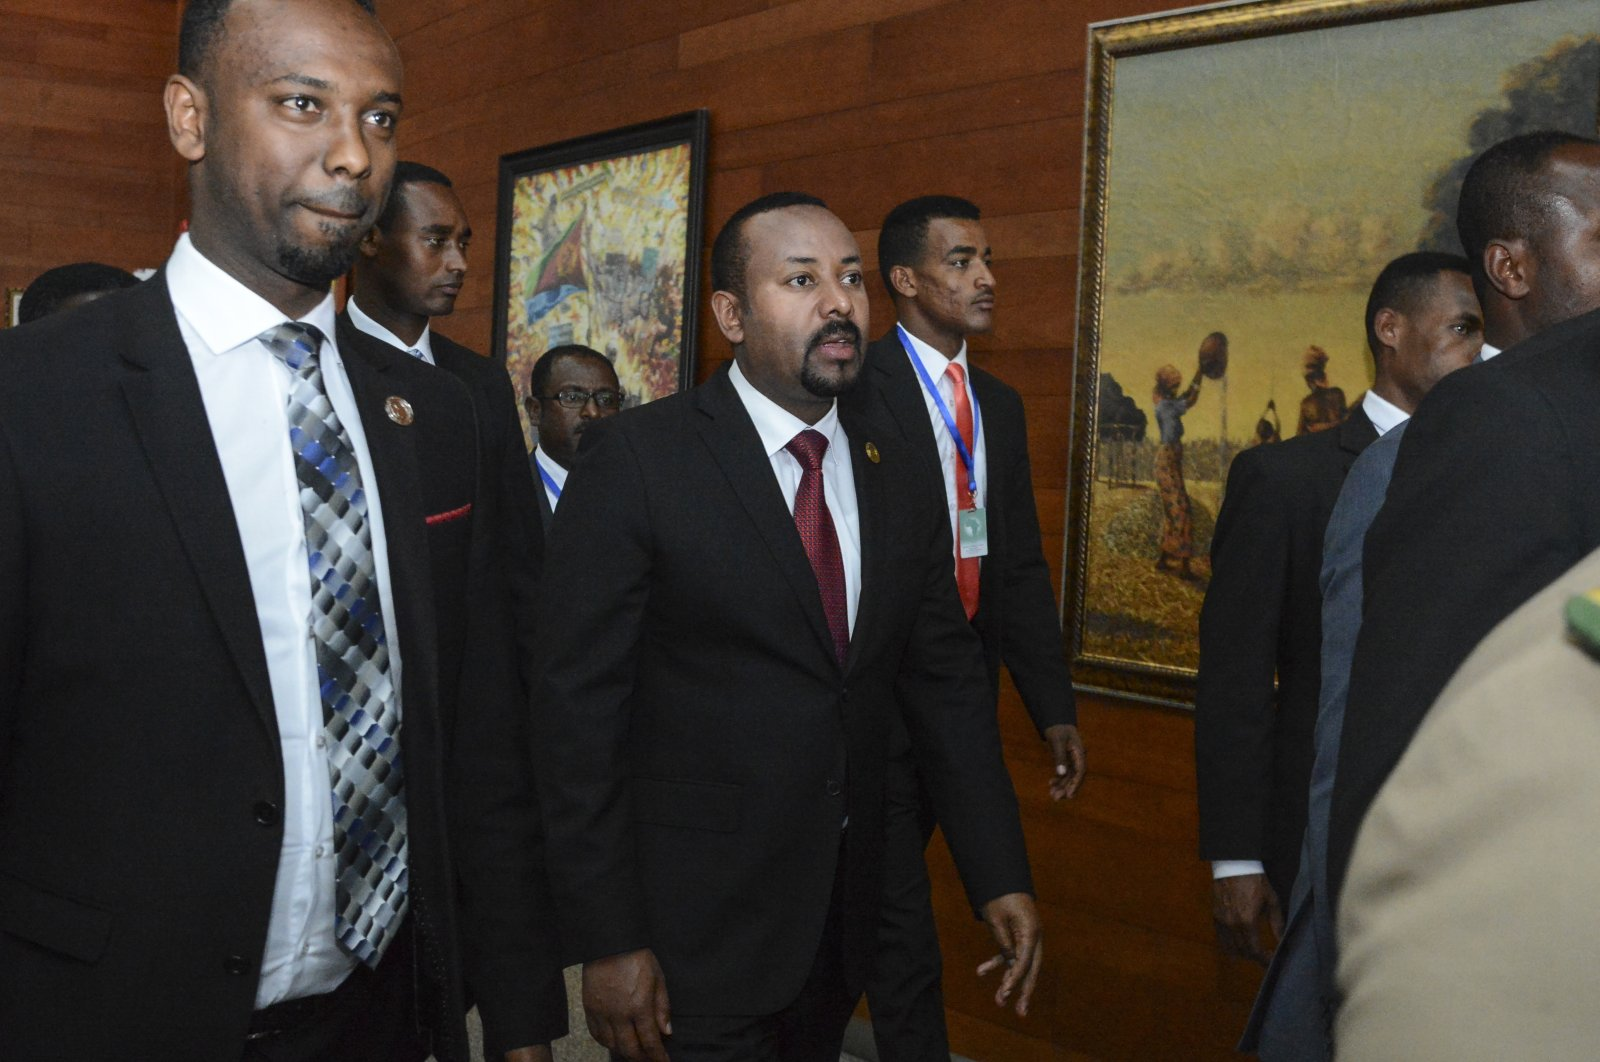 Ethiopian Prime Minister Abiy Ahmed (C) arrives for the opening session of the 33rd African Union (AU) Summit at the AU headquarters in Addis Ababa, Ethiopia, Feb. 9, 2020. (AP Photo)